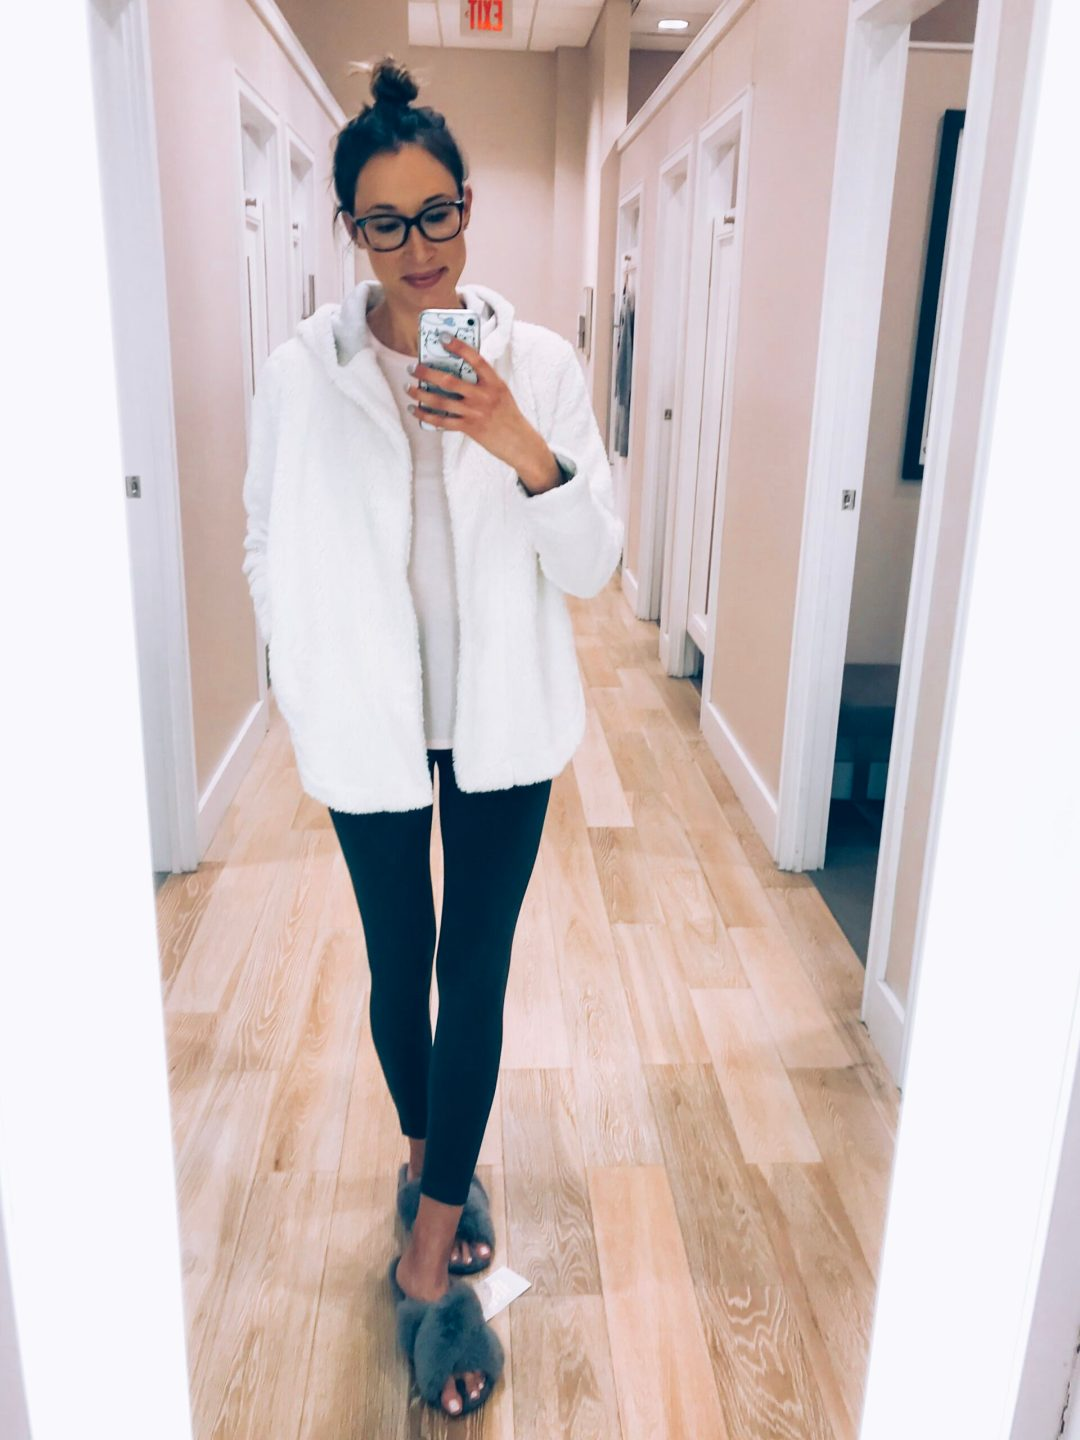 LOFT haul and try-on sherpa hooded cardigan and soft leggings